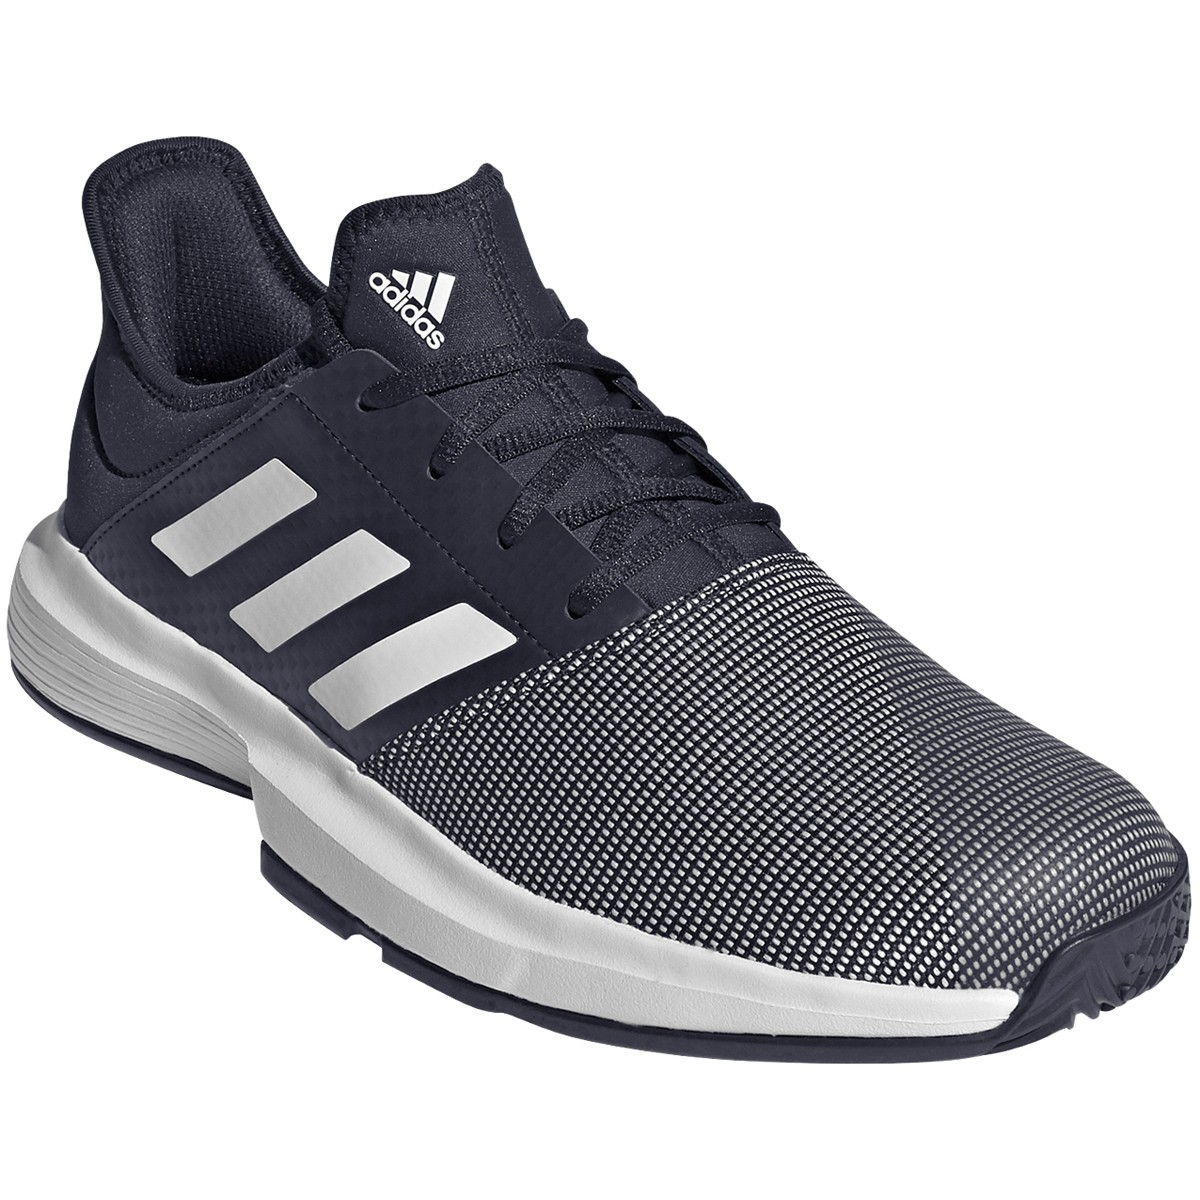 ADIDAS GAMECOURT ALL COURT SHOES